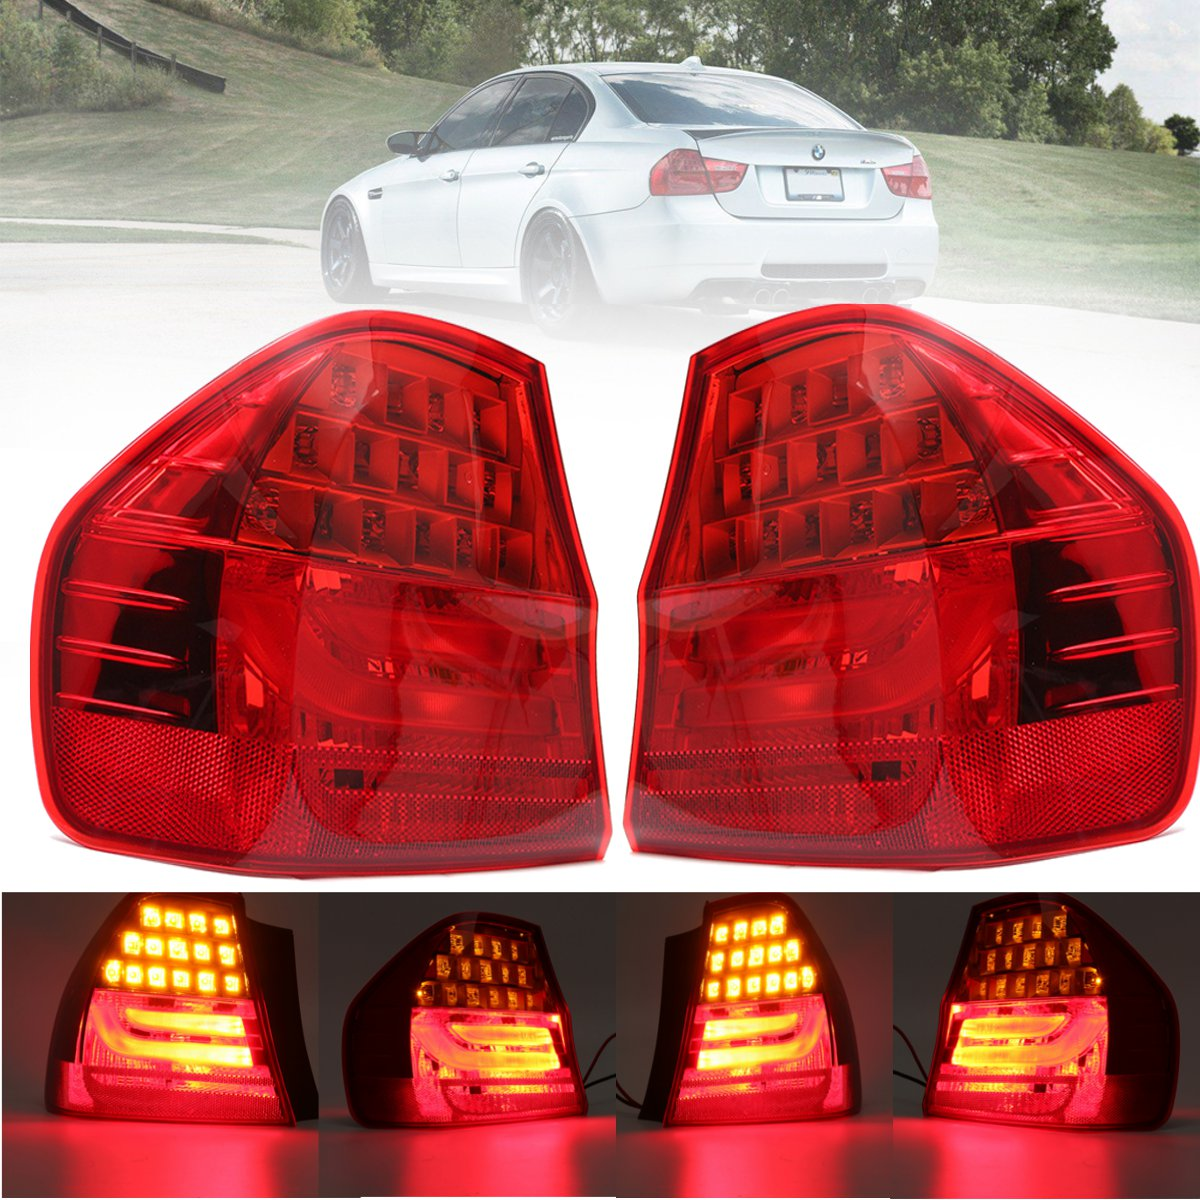 1Pcs Car Rear Tail Lamp Light Led Light Left / Right Side For BMW 3 SERIES E90 2008 2009 2010 2011 mzorange car led light for vw passat b6 sendan 2006 2007 2008 2009 2010 2011 car styling rear tail light lamp left right outer